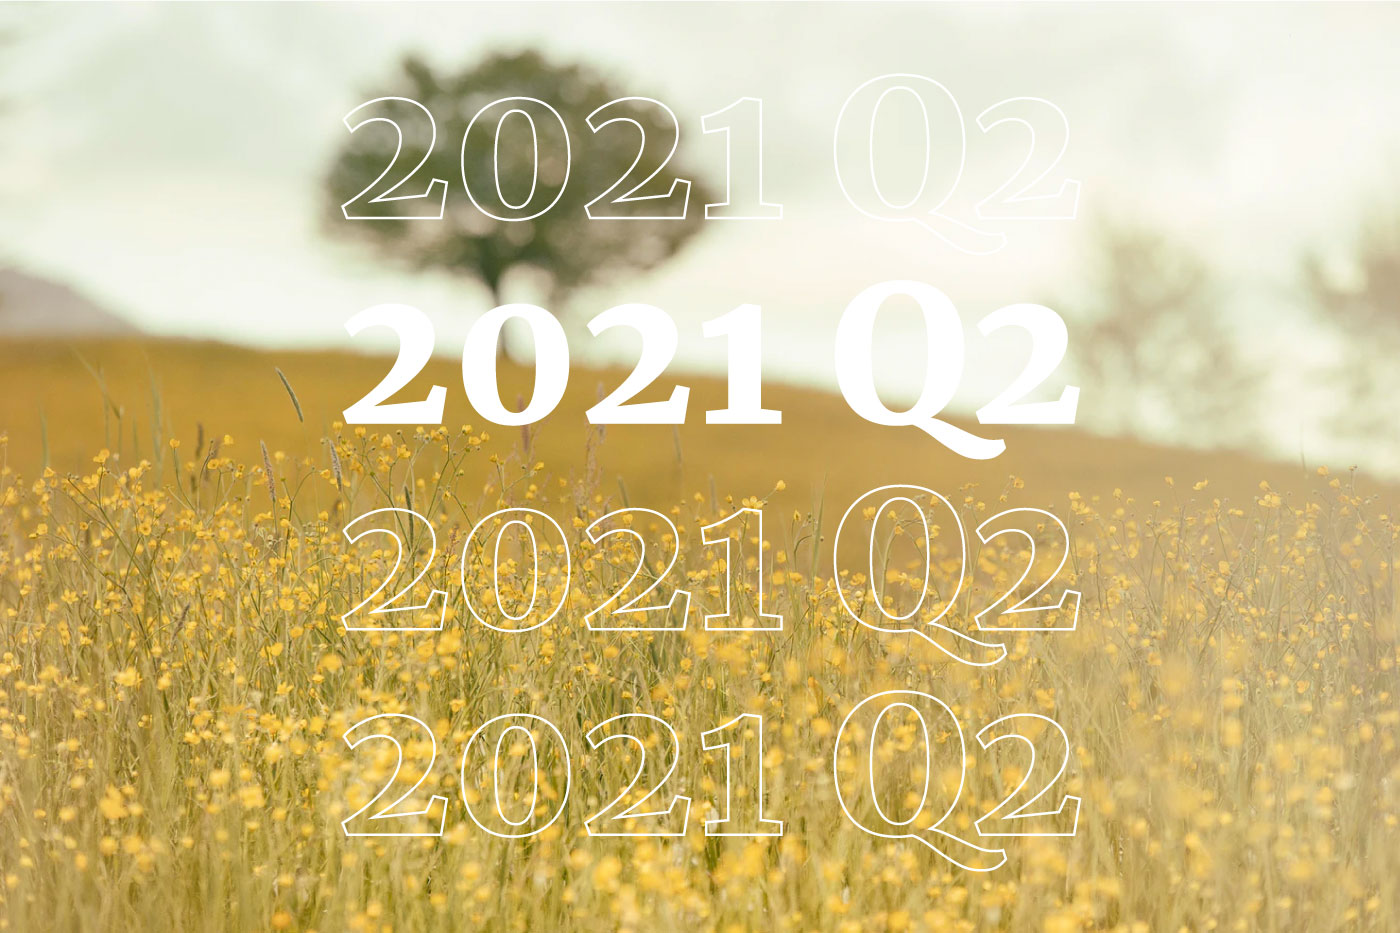 Report Q2: the numbers of our second quarter